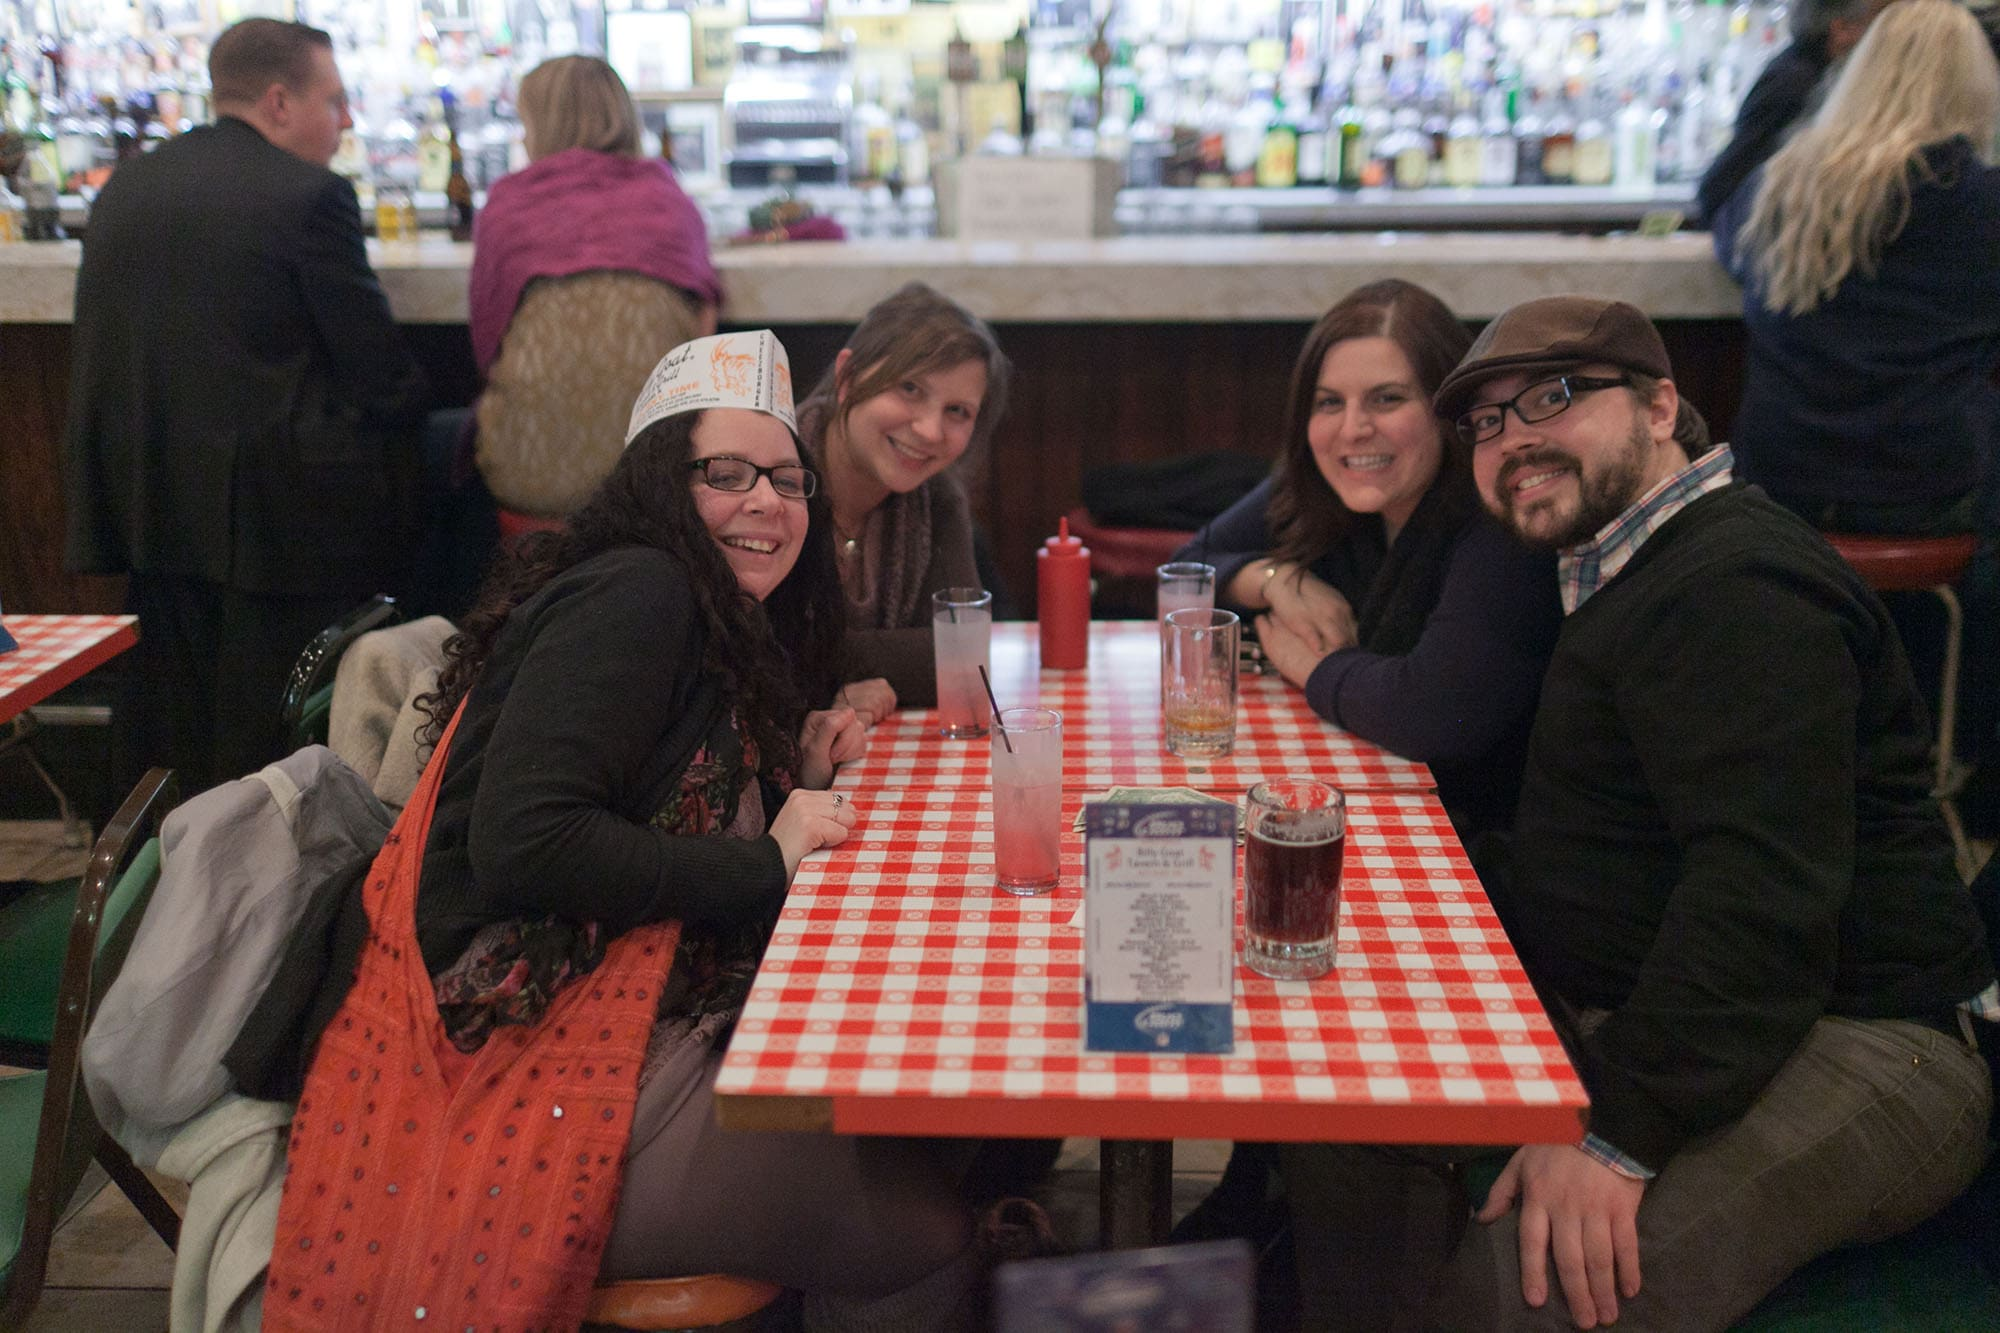 Heather's birthday party at Billy Goat Tavern in Chicago, Illinois.